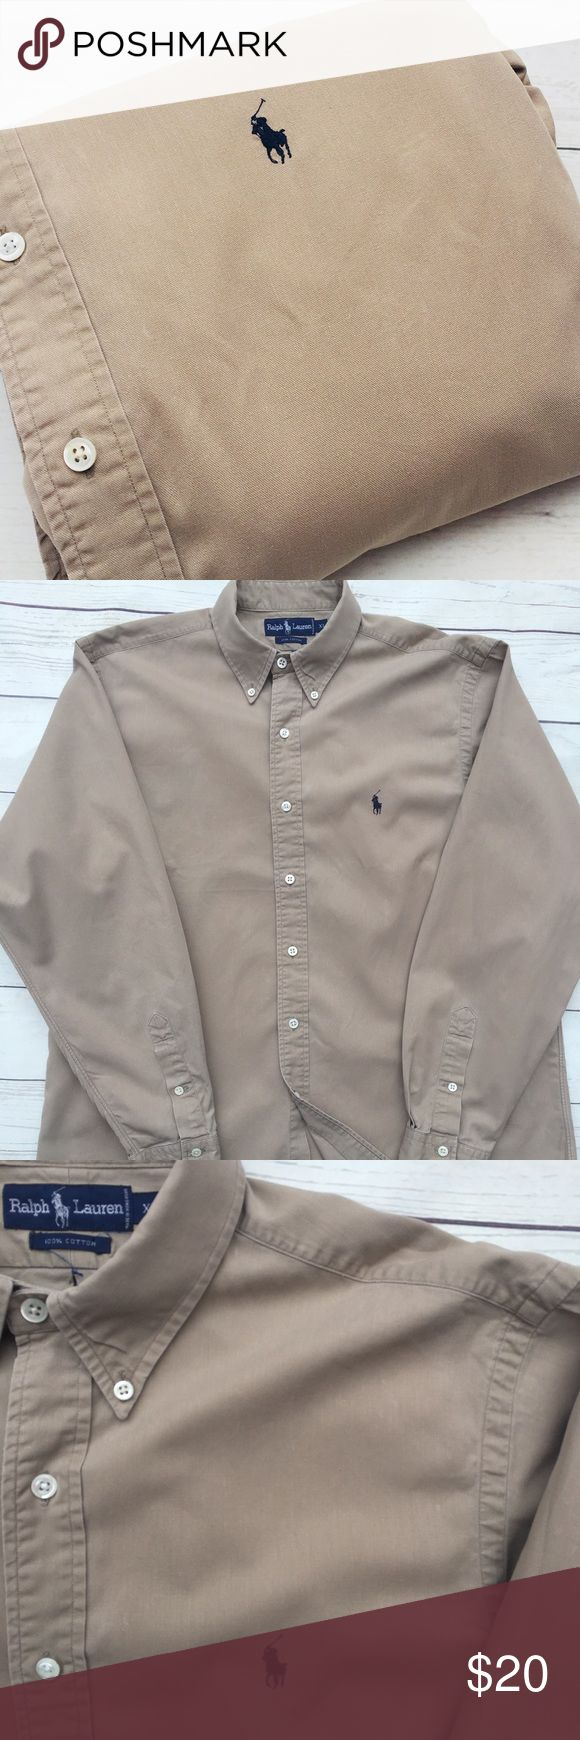 """🐎 🐎SALE 🐎1/$20•2/$35•3/$50•🐎POLO• RALPH• LAUREN•  🇺🇸Military, police & fire men & women receive 10% discount🇺🇸  men's  long sleeve 100% cotton oxford shirt• XL per tag, see measurements below•  Signature pony•  GUC• tiny white spots throughout shirt•  shoulder: 20"""" Chest: 26"""" (armpit-armpit) Sleeve: 36"""" Length: 35""""  🐎CHECK BACK EACH WEEK FOR NEW POLO LISTINGS🐎 Polo by Ralph Lauren Shirts Casual Button Down Shirts"""